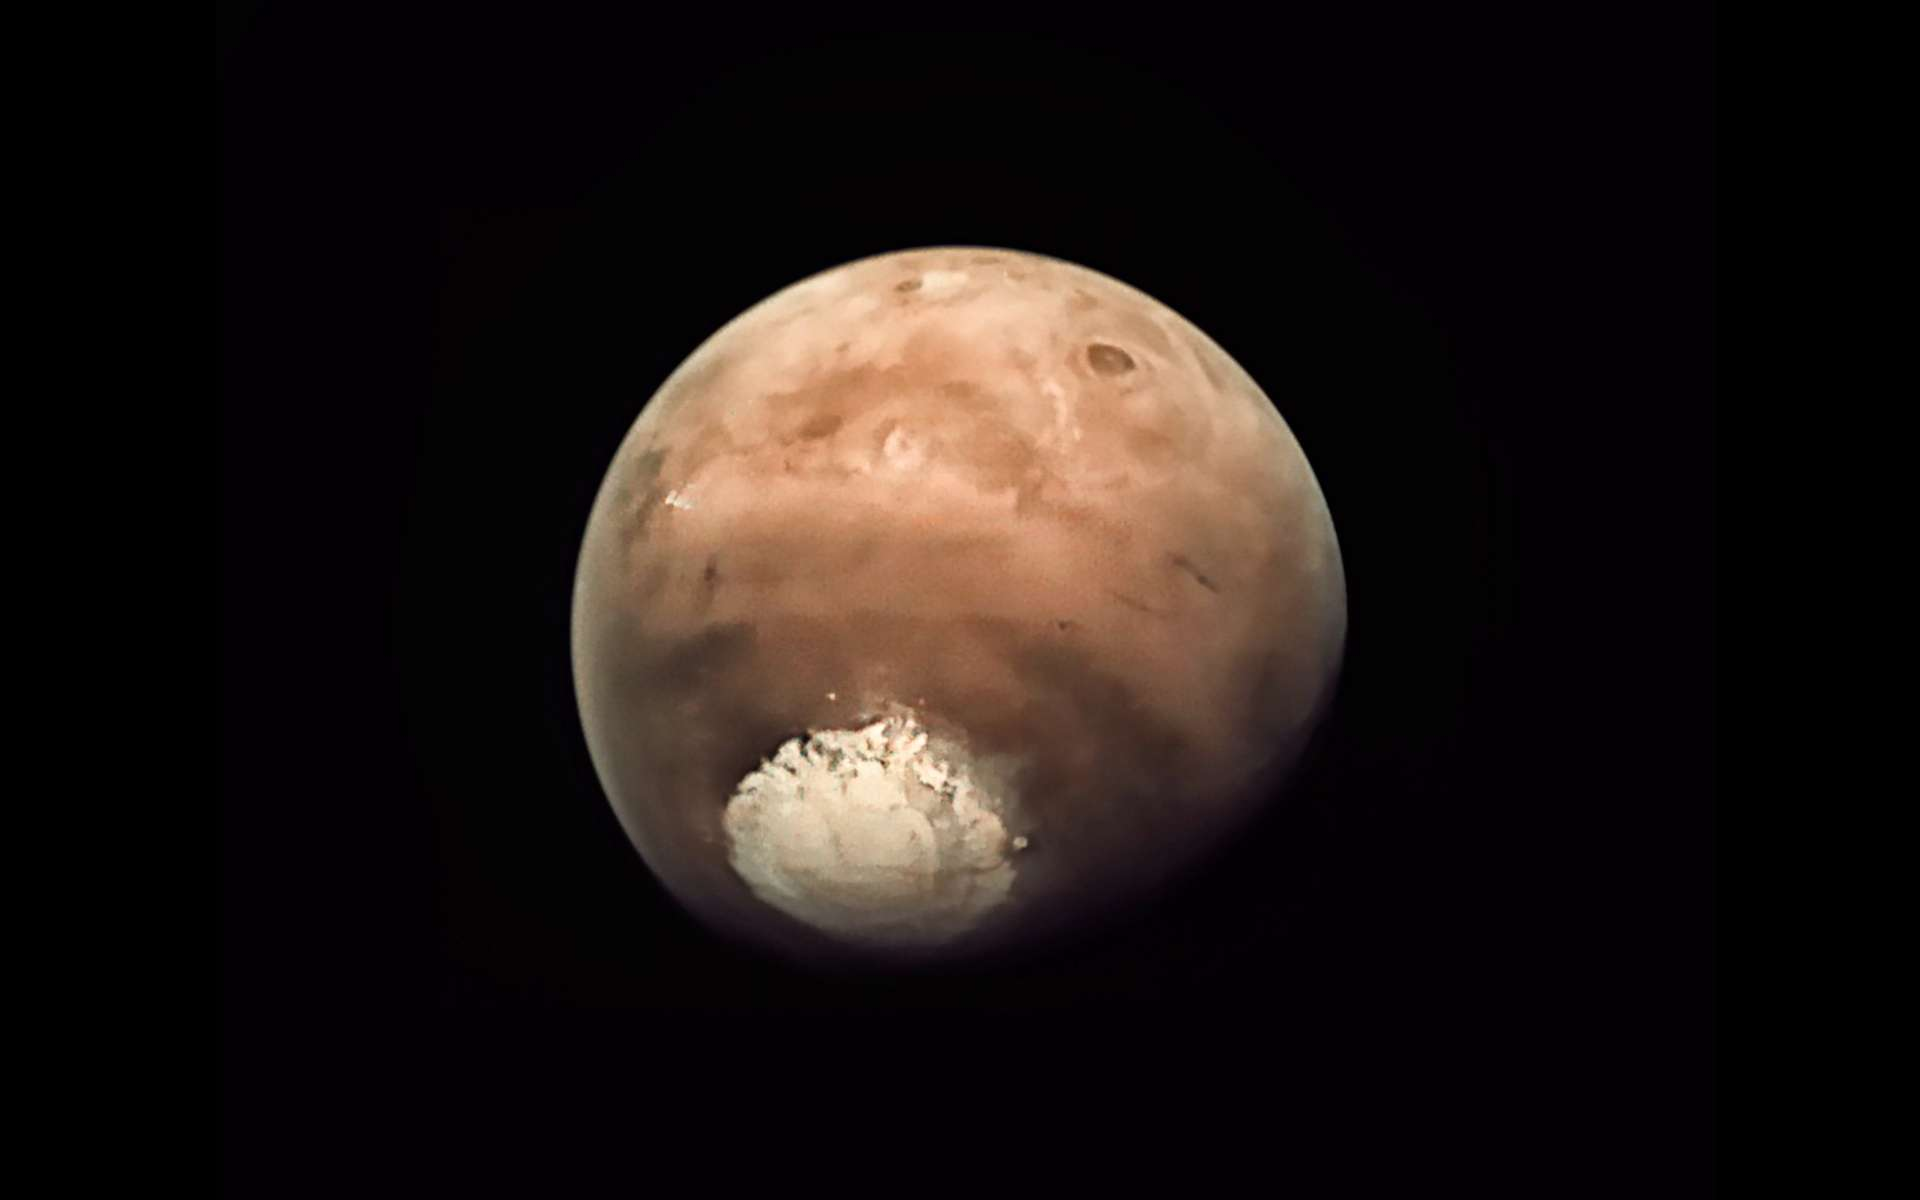 La calotte polaire sud de Mars vue par la webcam de la sonde Mars Express. Image retravaillée par Jason Major. © ESA, CC by-sa 3.0 IGO, Jason Major